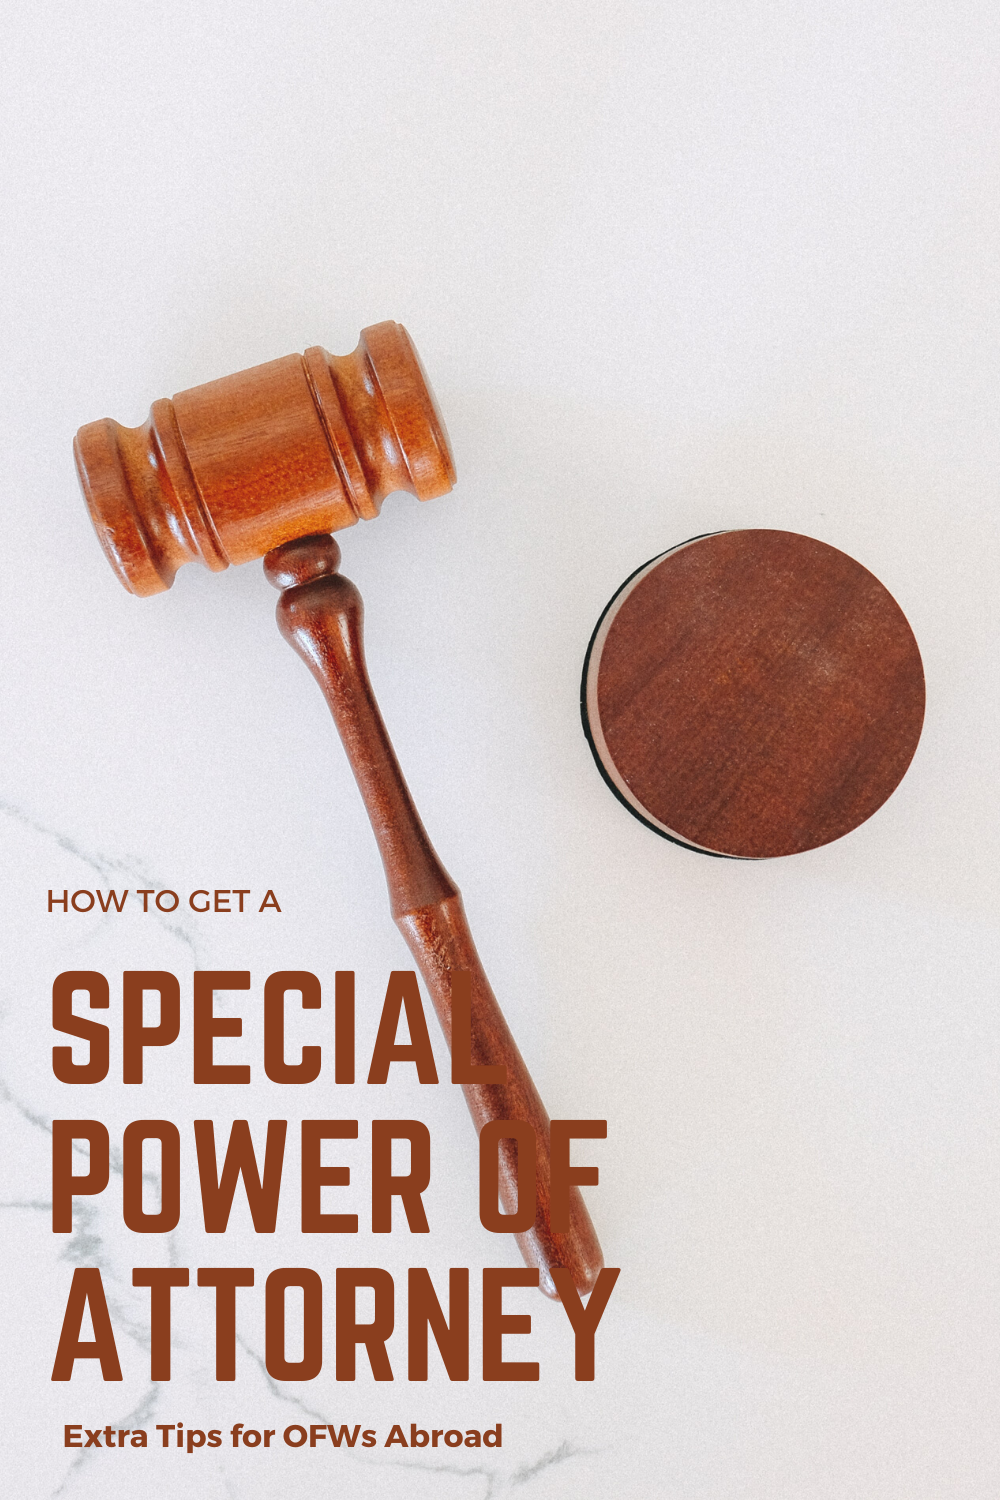 How To Get a Special Power of Attorney in the Philippines and Extra Tips for OFWs Abroad